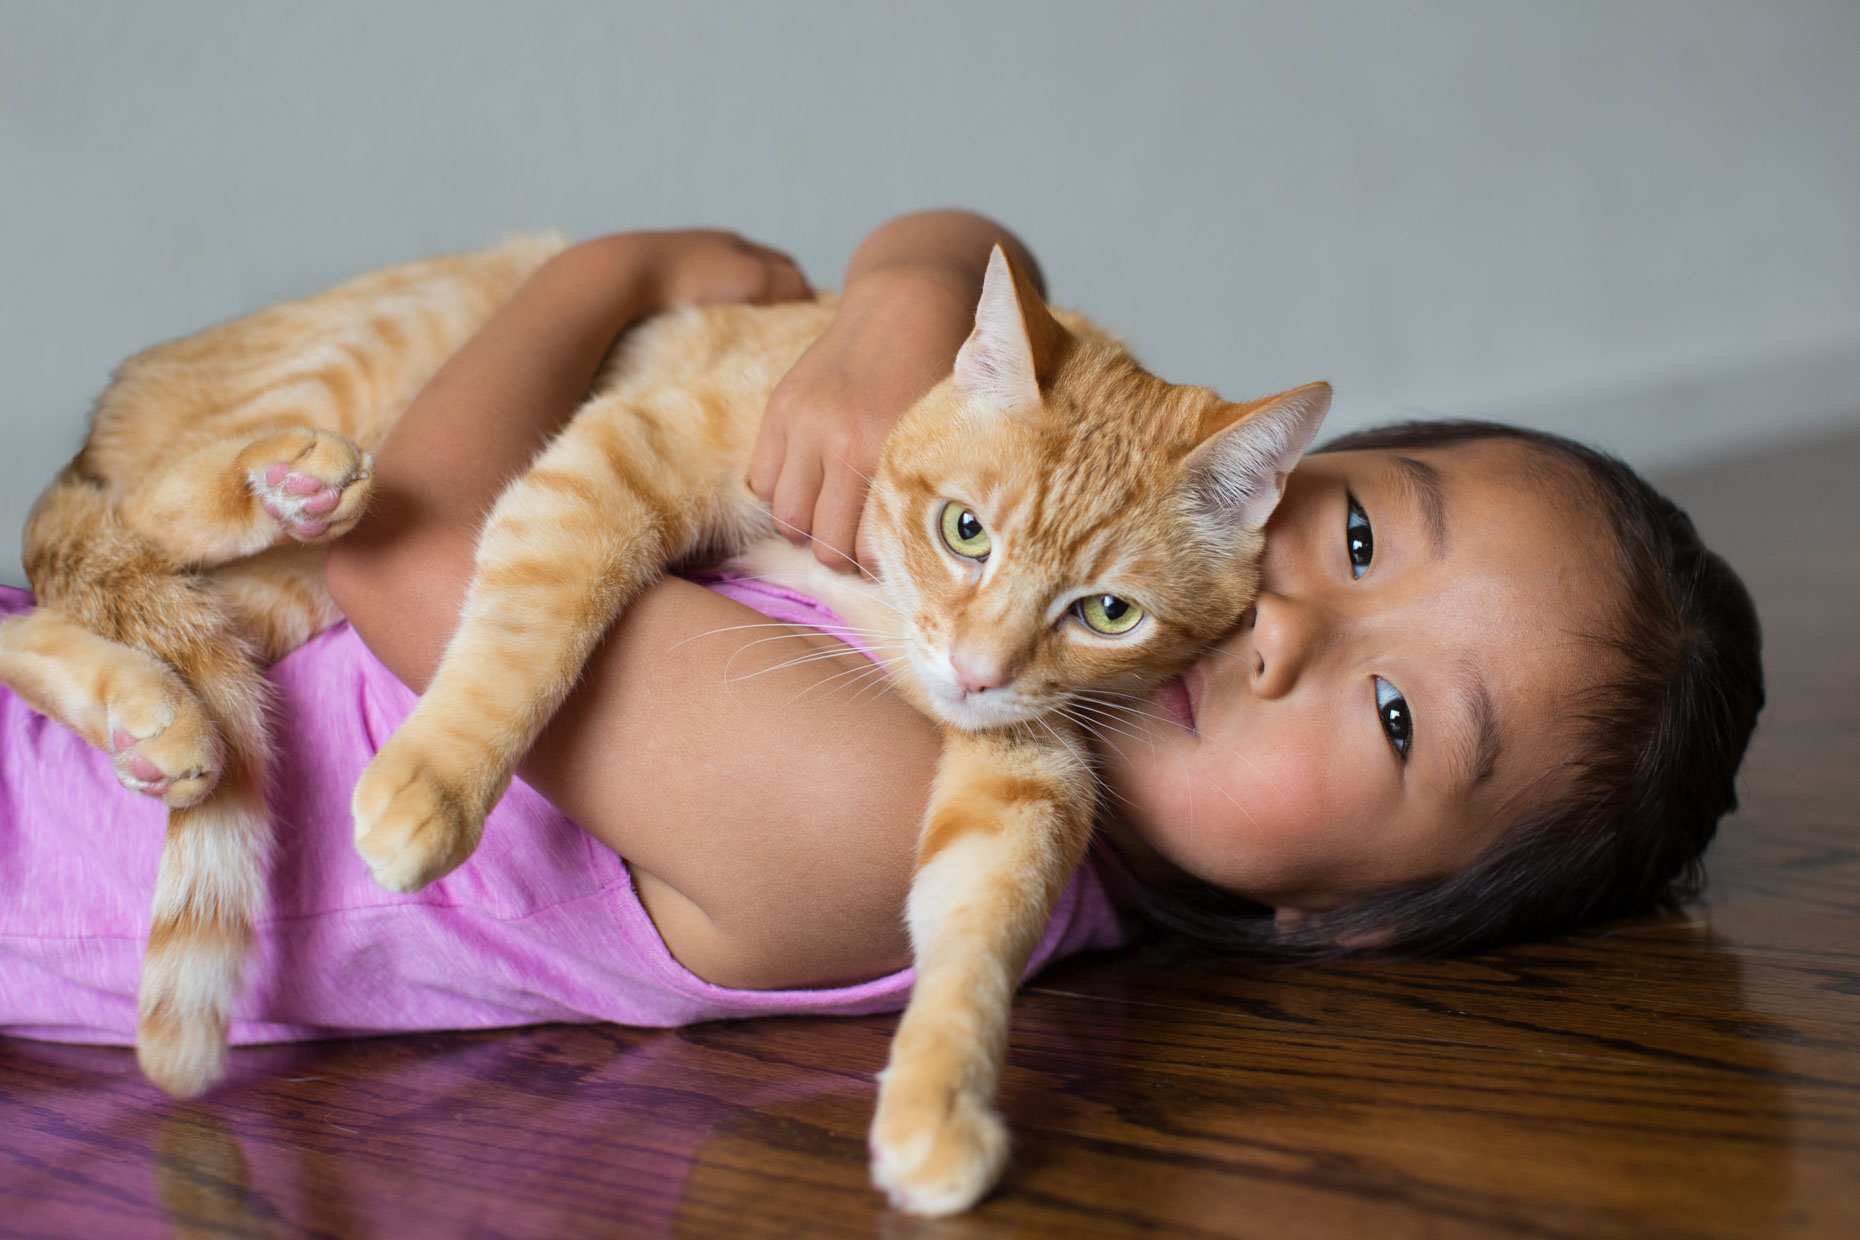 Cat and People Photography | Little Girl with Cat by Mark Rogers